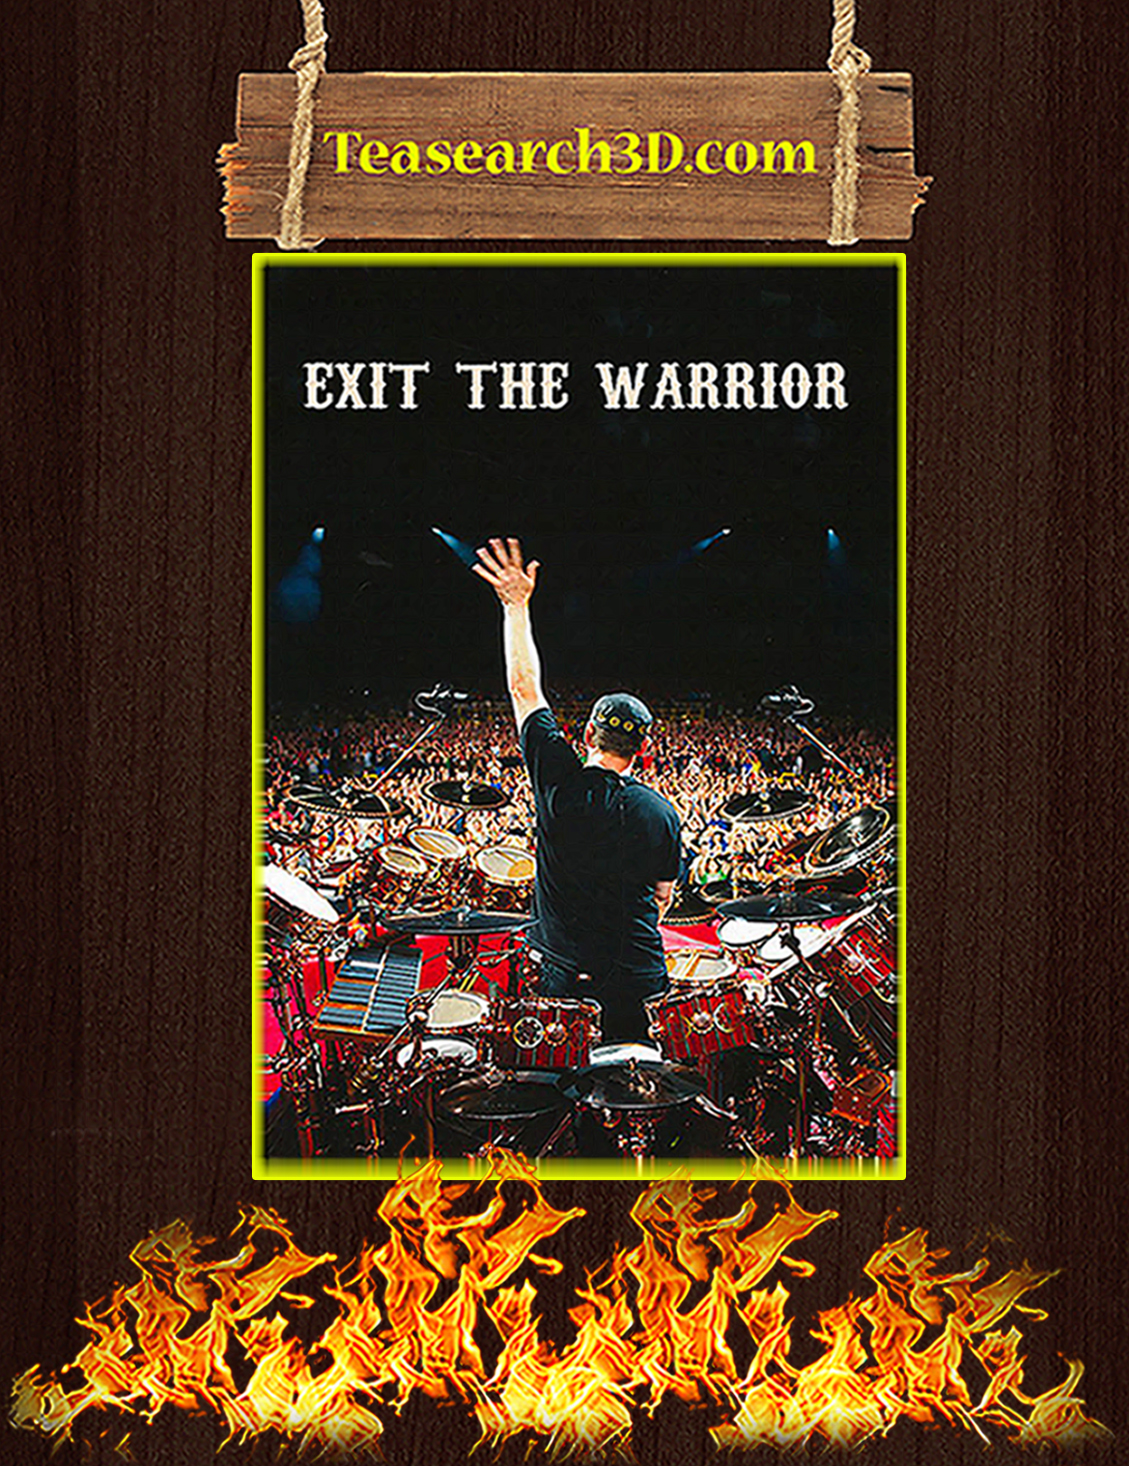 Neil peart exit the warrior poster A3